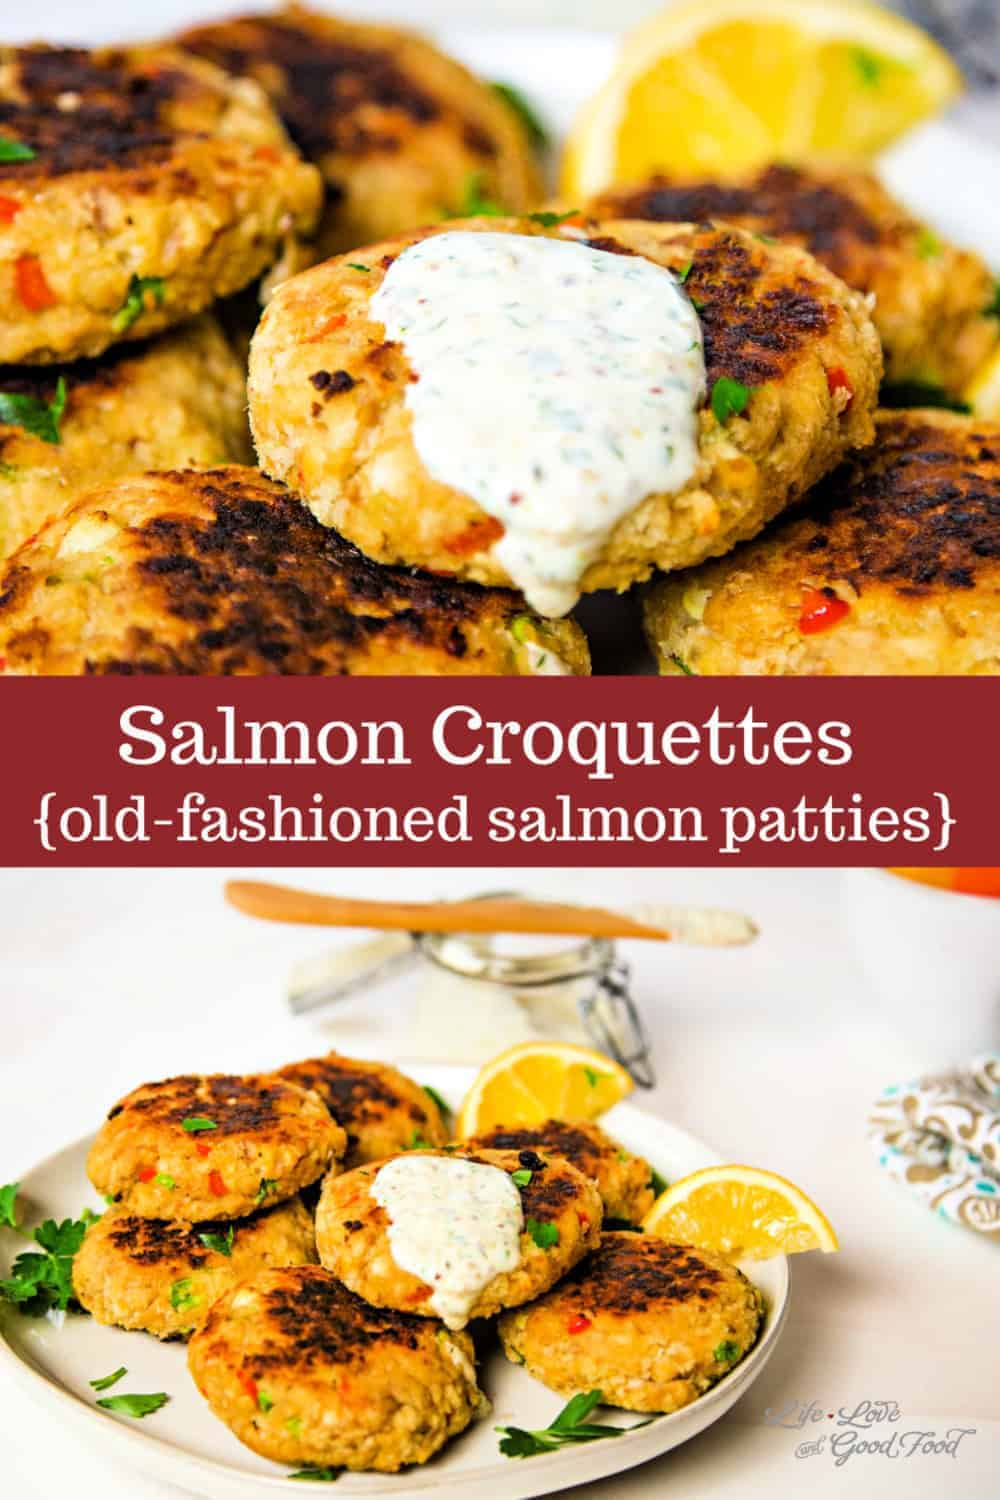 A Southern classic, Salmon Croquettes are prepared with cooked salmon —canned or fresh — and Panko breadcrumbs and are shaped into patties and pan-fried until flaky on the inside and crispy on the outside. Season these fish cakes with grated onion, red bell pepper, and garlic and serve them with a tangy homemade tartar sauce. This easy dinner recipe is fast, delicious, and easy on your budget! You can even serve salmon croquettes on buns as salmon burgers. How's that for a healthy meal idea?